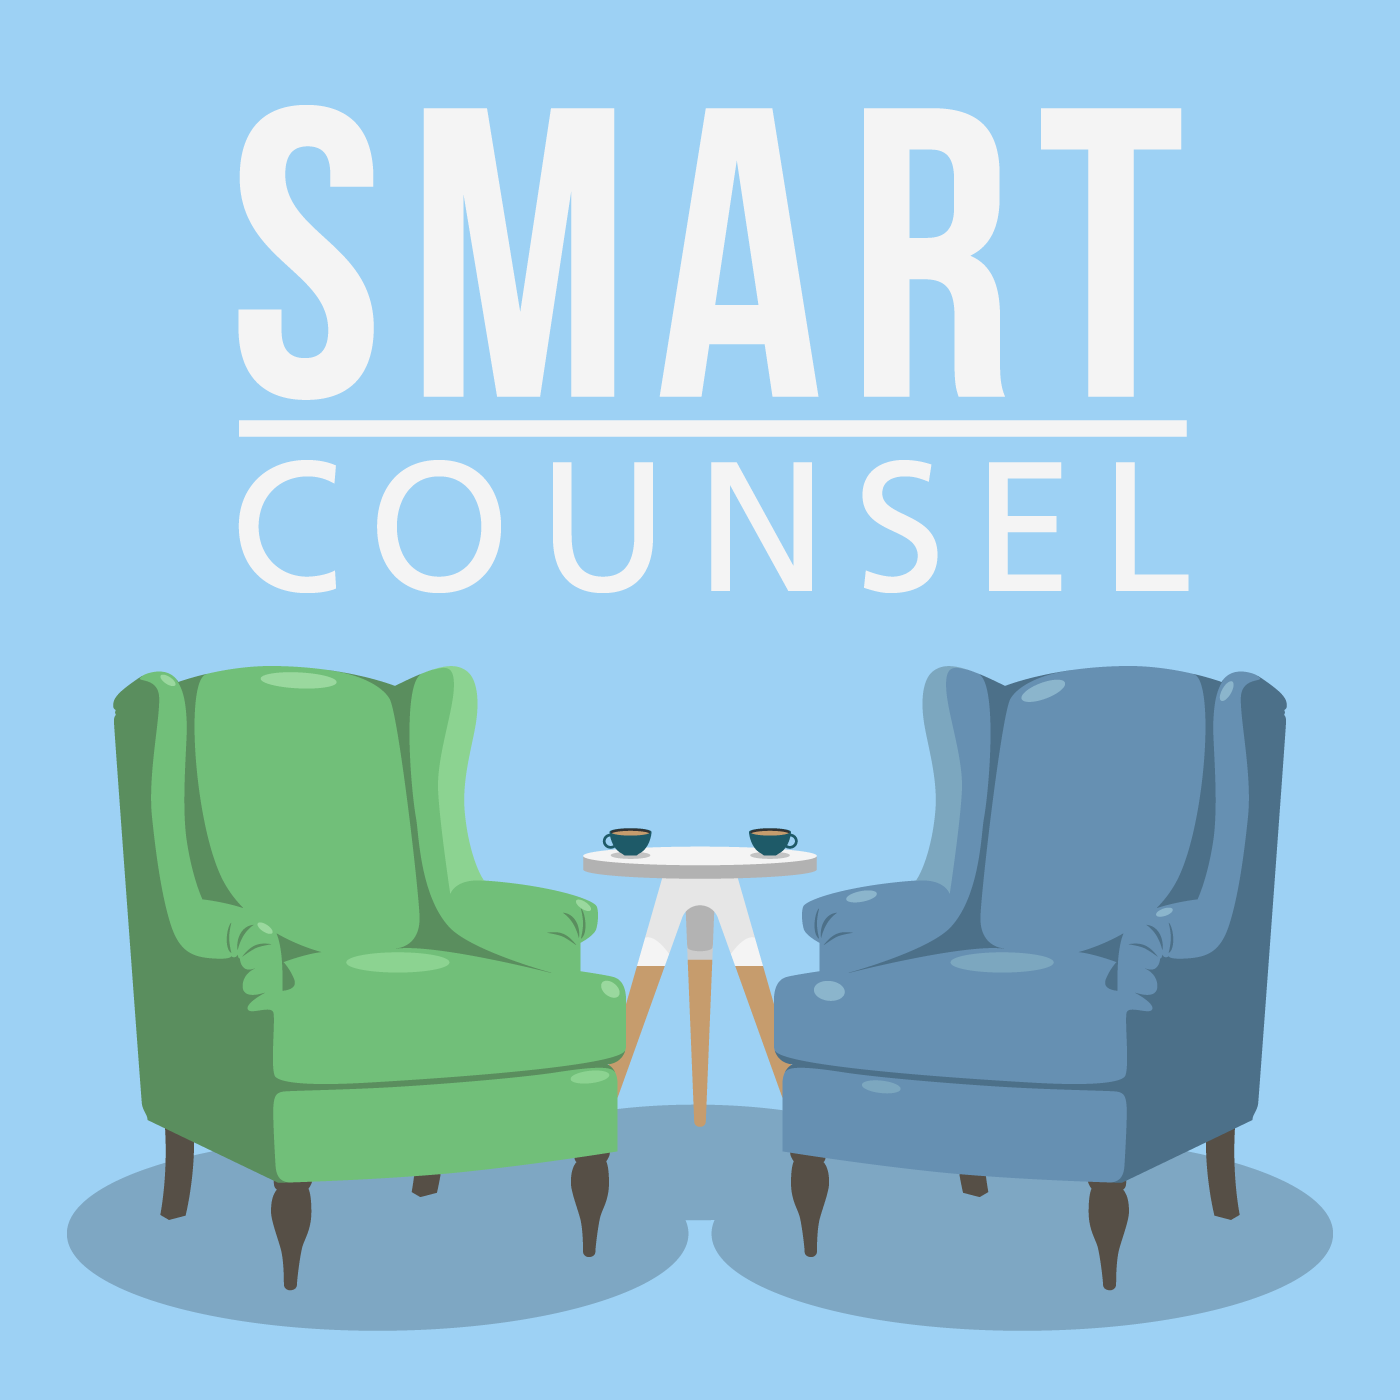 Graphic used for podcast series for counseling professionals.